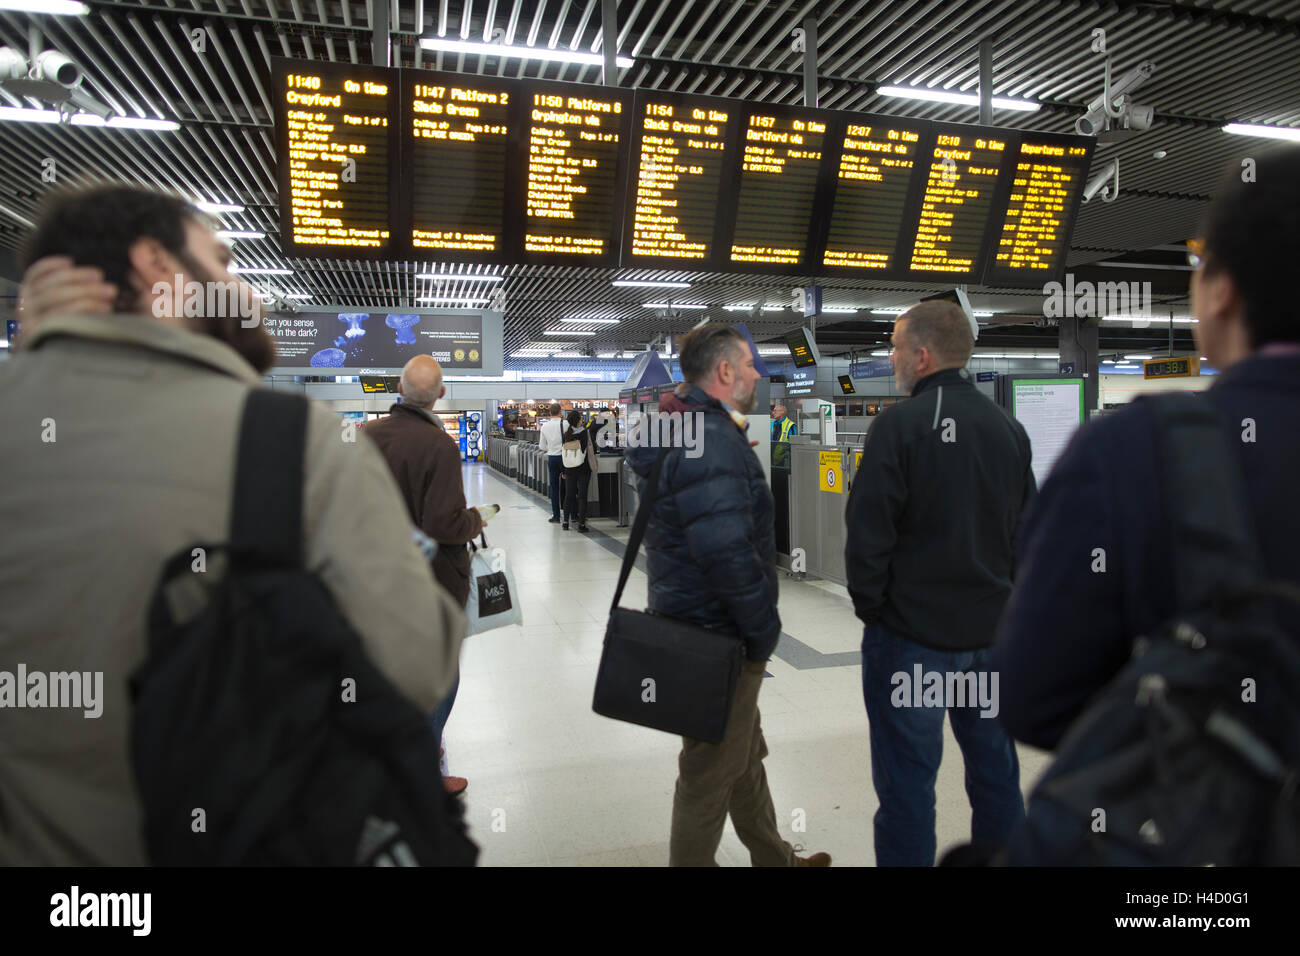 Commuters waiting for train information at London Cannon Street station, Central London, England, United Kingdom - Stock Image